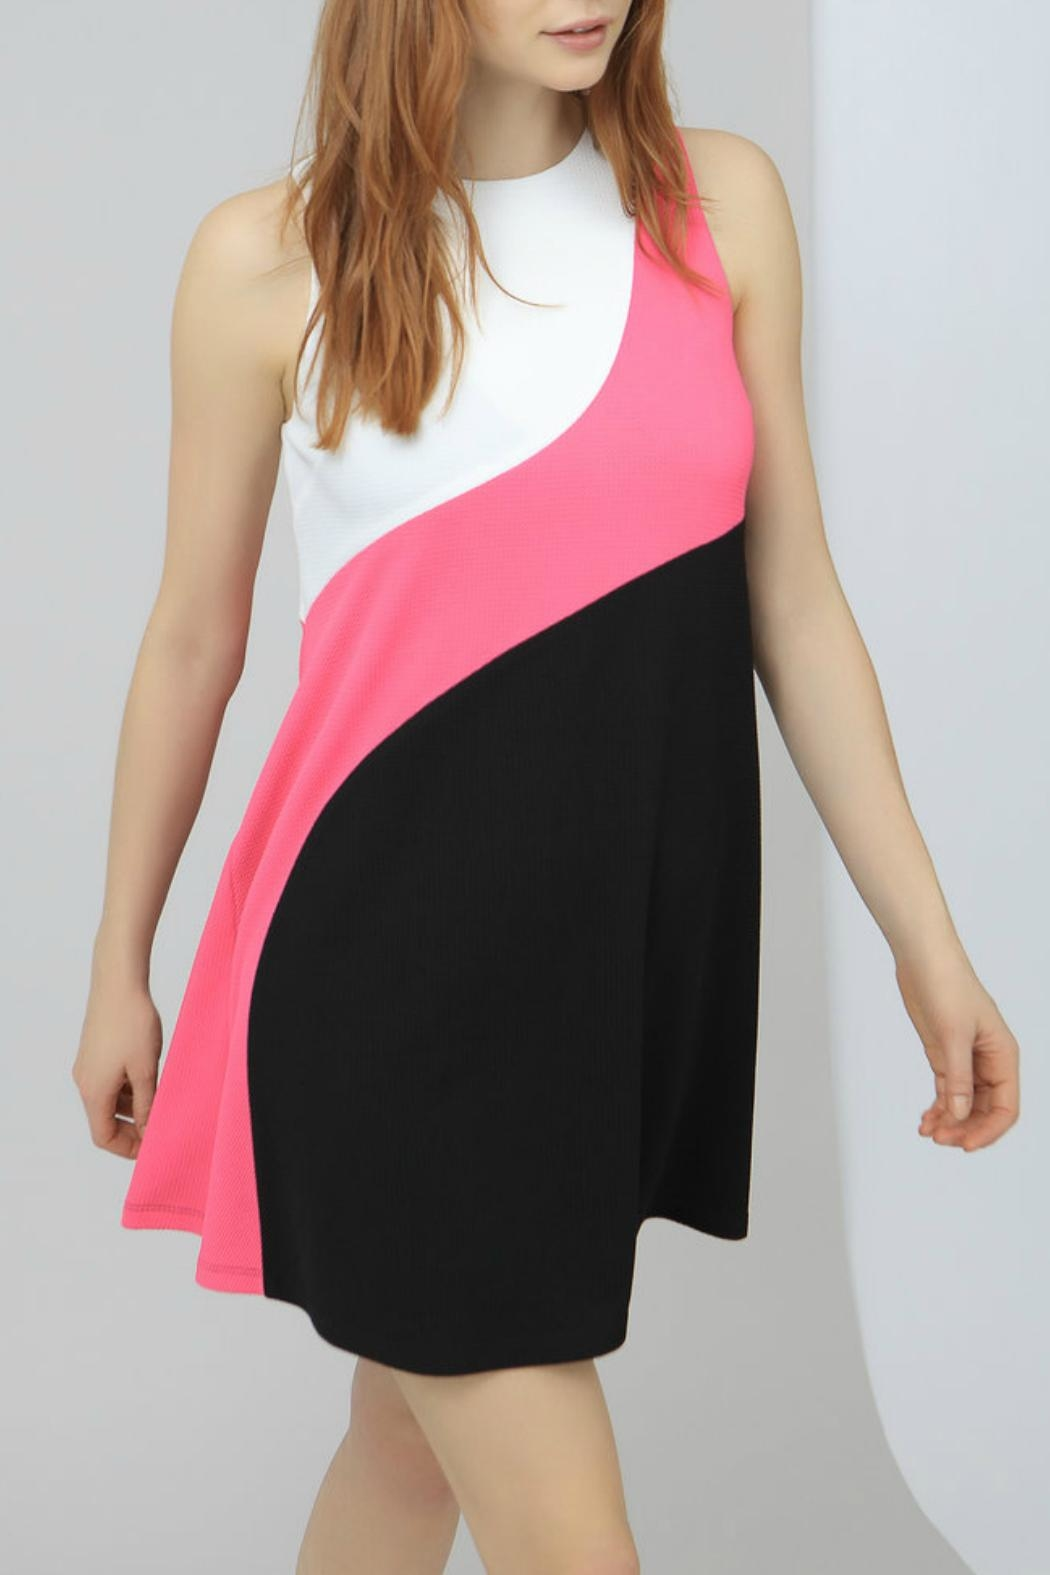 HUTCH Color Block Mini Dress - Main Image